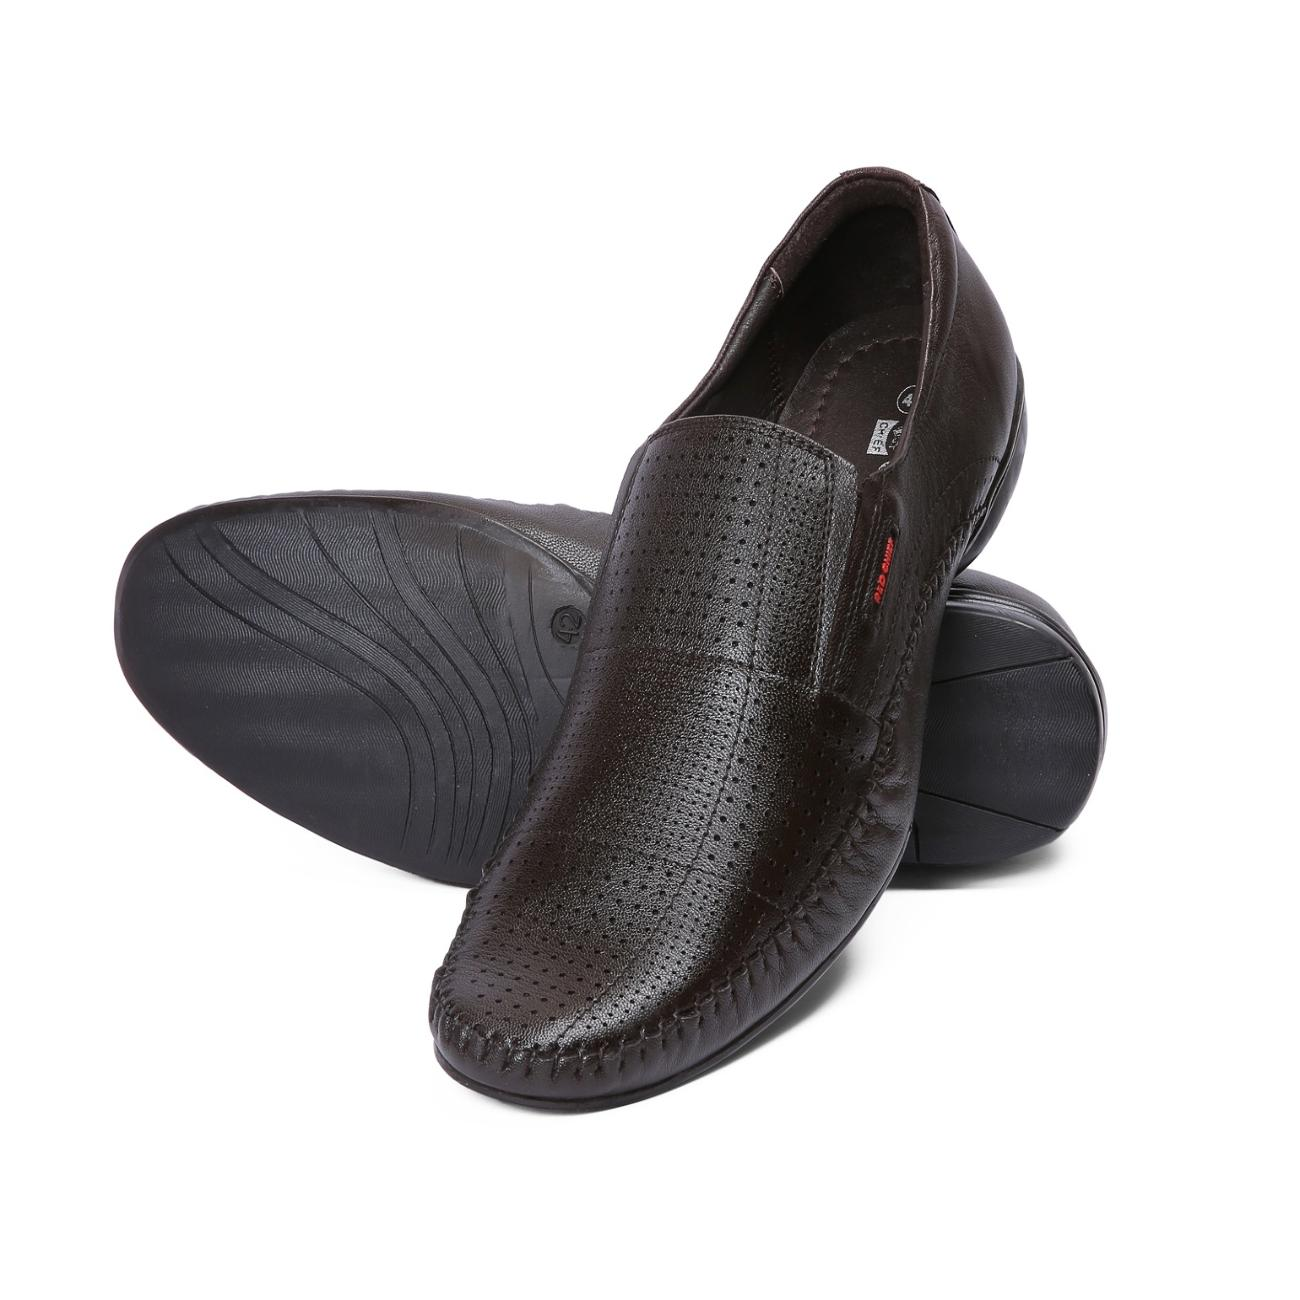 brown leather slip-on formal shoes from behind